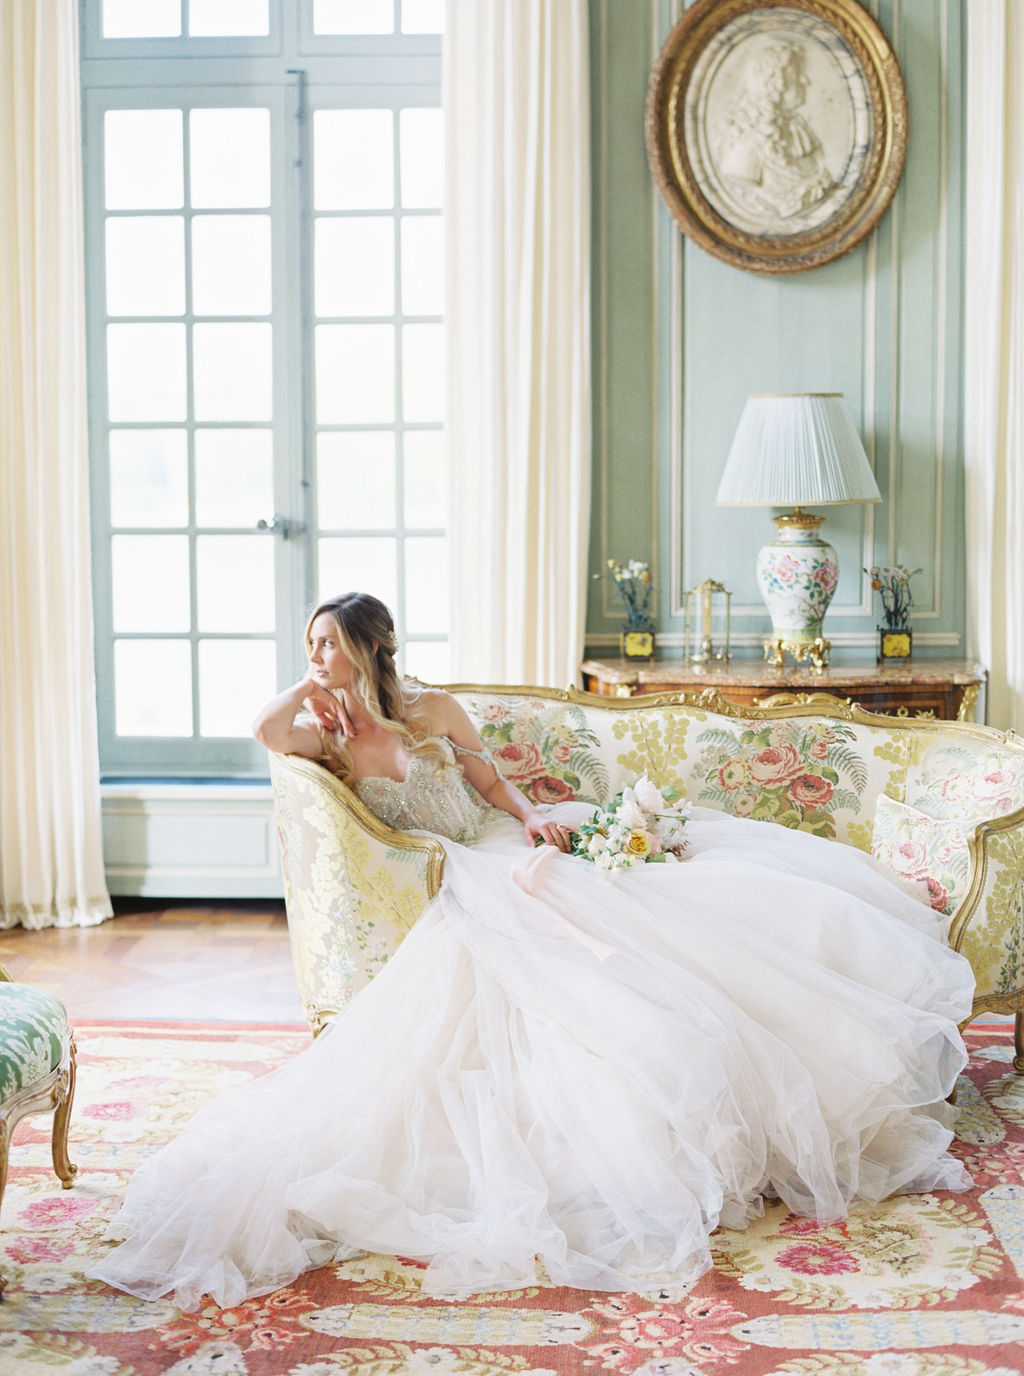 travellur_photoshoot__elegance_Jardin_de_Chateau_de_Villette_bridal_hair_accessories_interiors.jpg